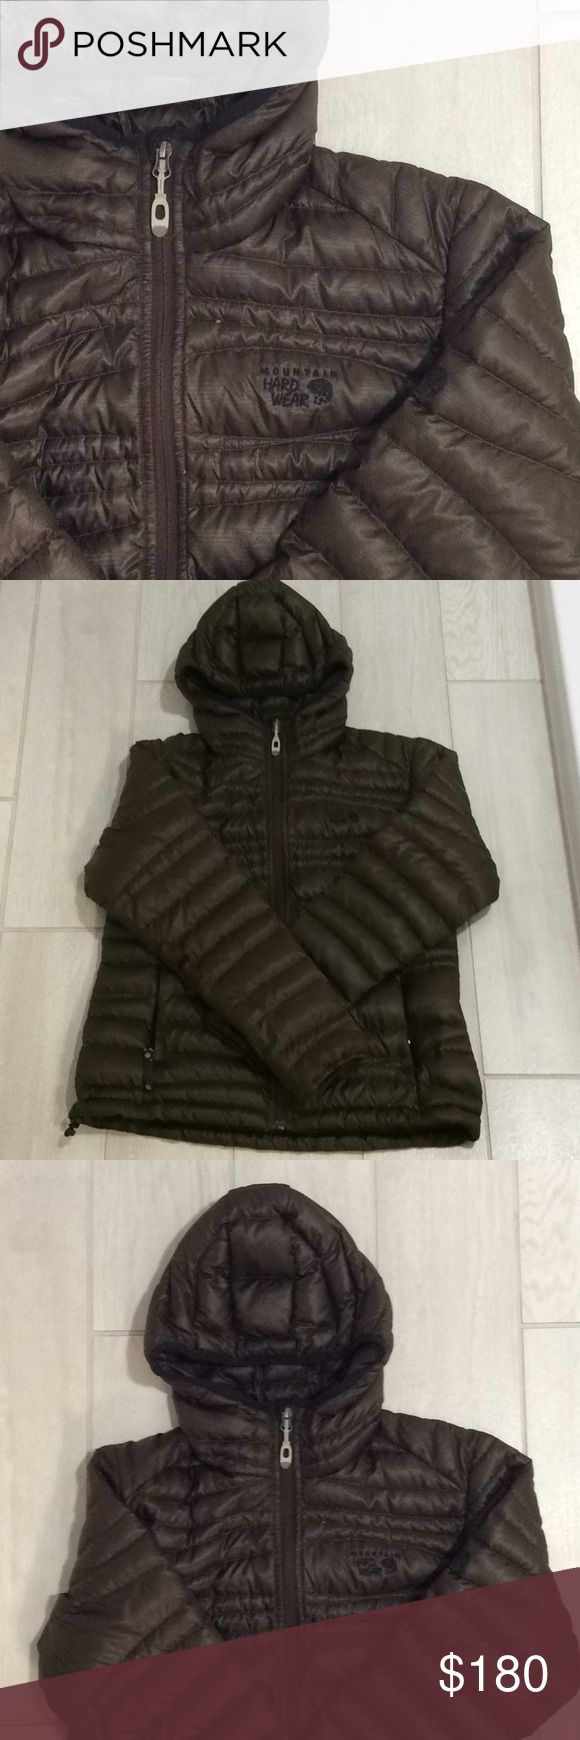 mountain hardwear hooded puffer mountain hardwear women's hooded puffer.   chocolate brown. down. packable into inside pocket. note tear repair on right arm measuring 1/2 inch (seen in last pic). jacket is otherwise in euc. Mountain Hardwear Jackets & Coats Puffers